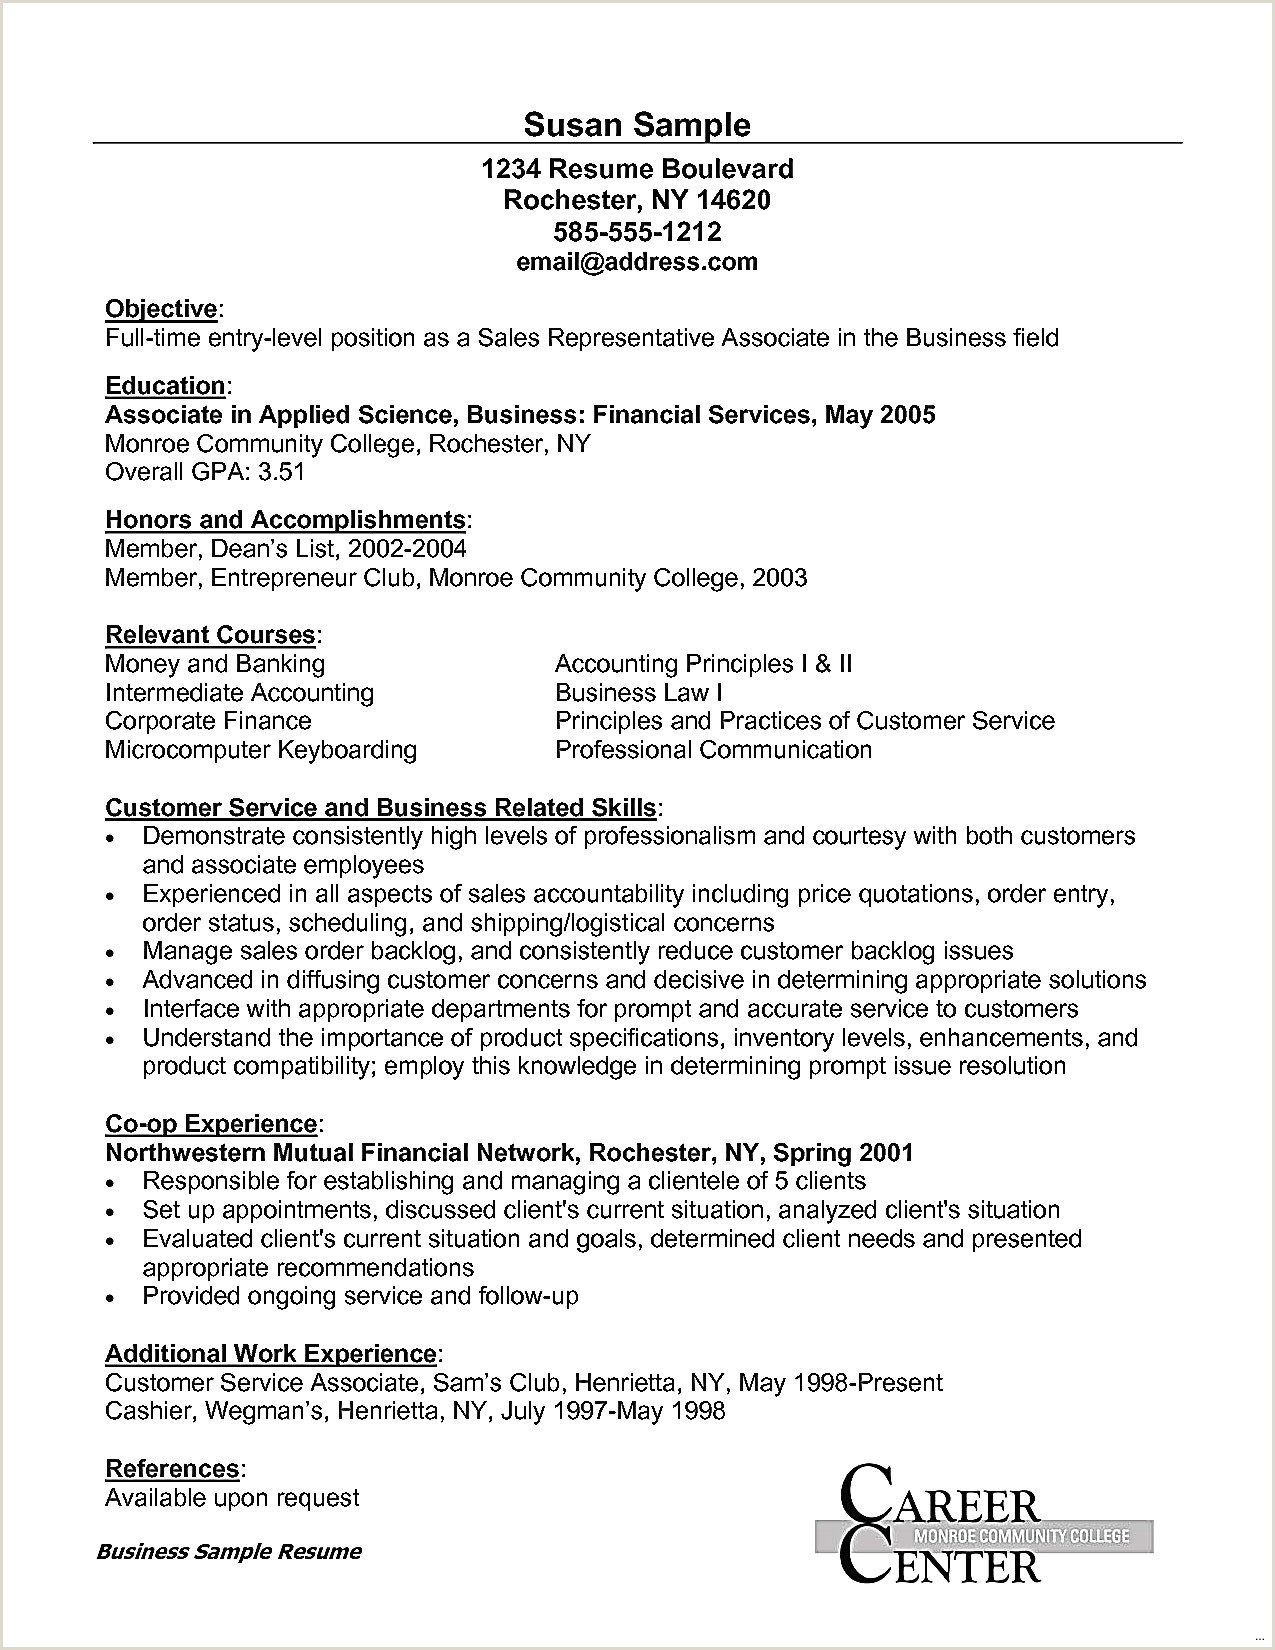 Sample Cover Letter For Fresh Graduate Without Experience